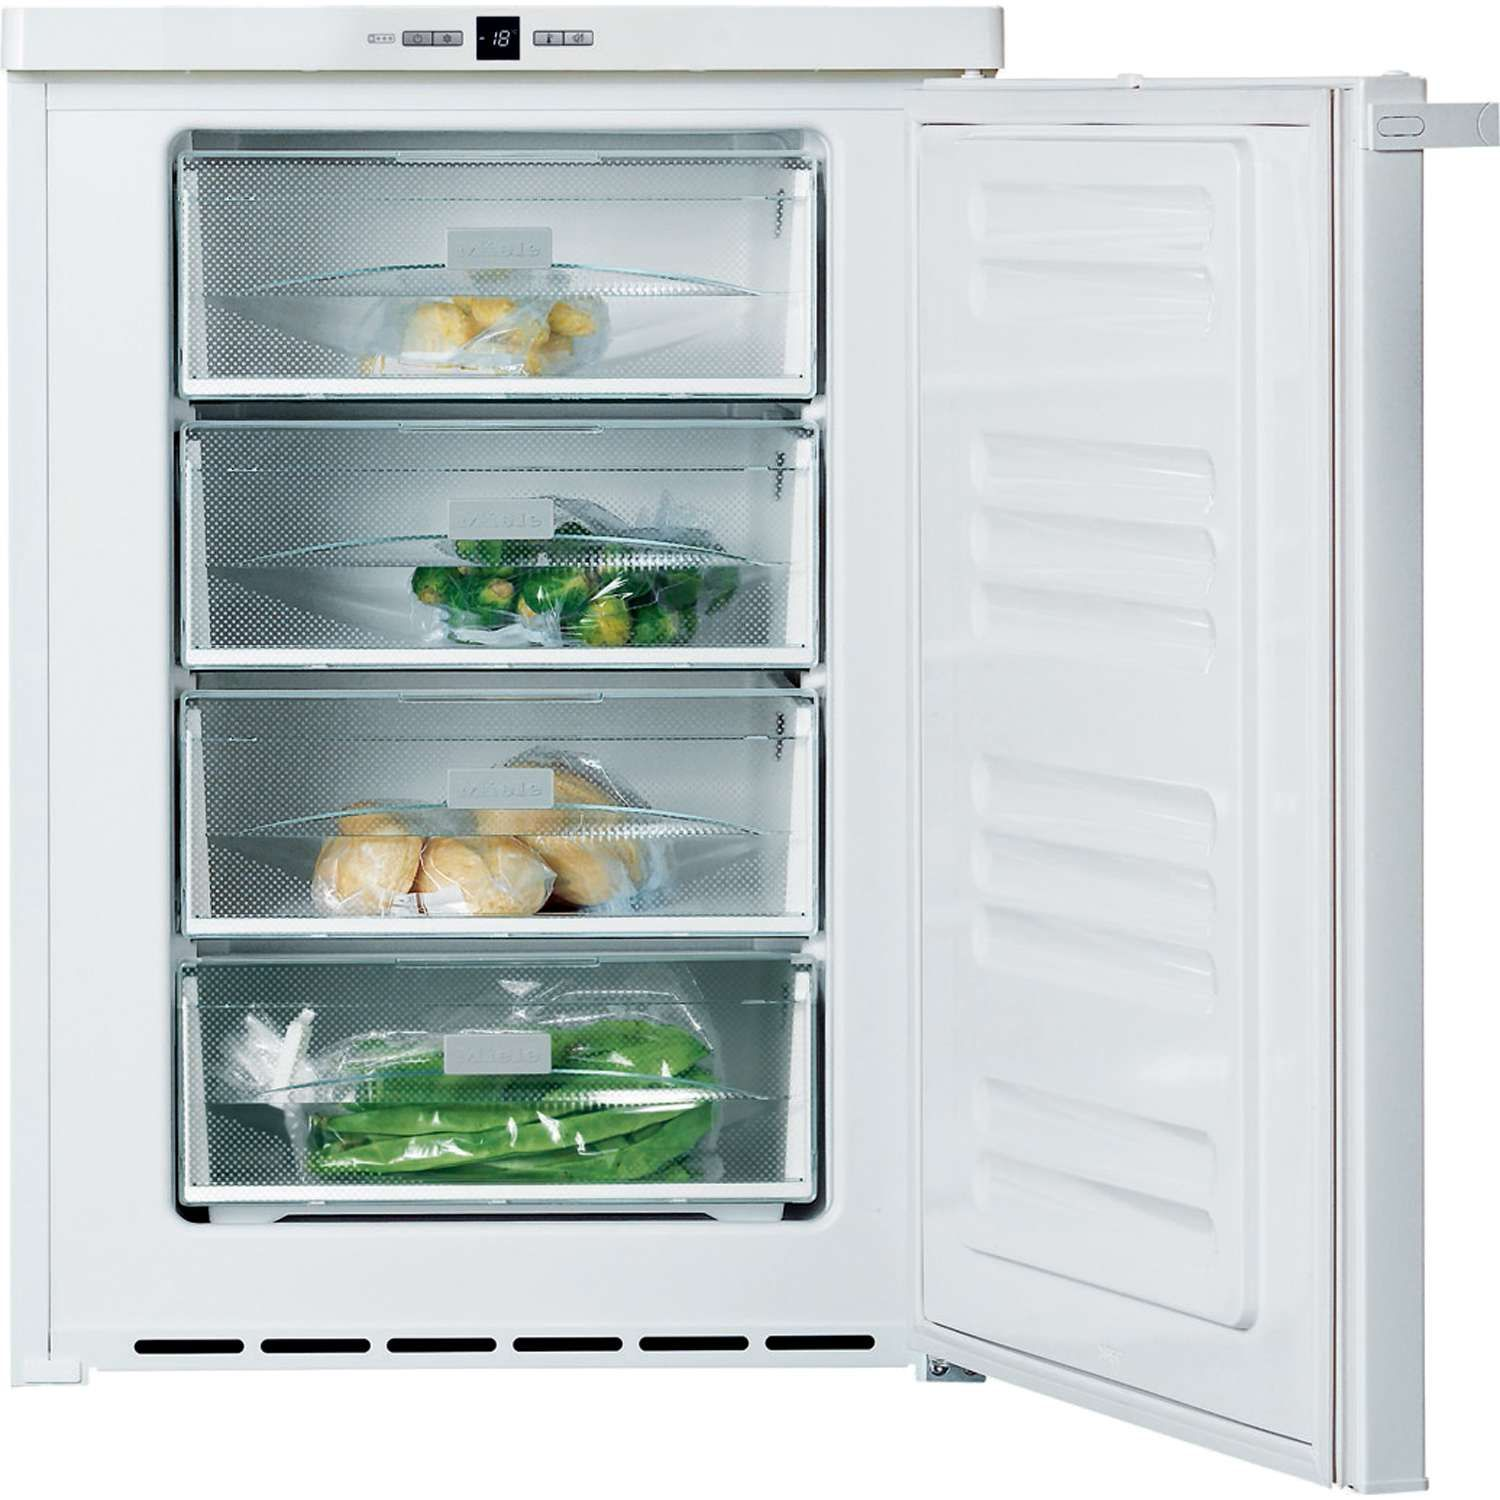 Miele under counter freezer 104L A rated